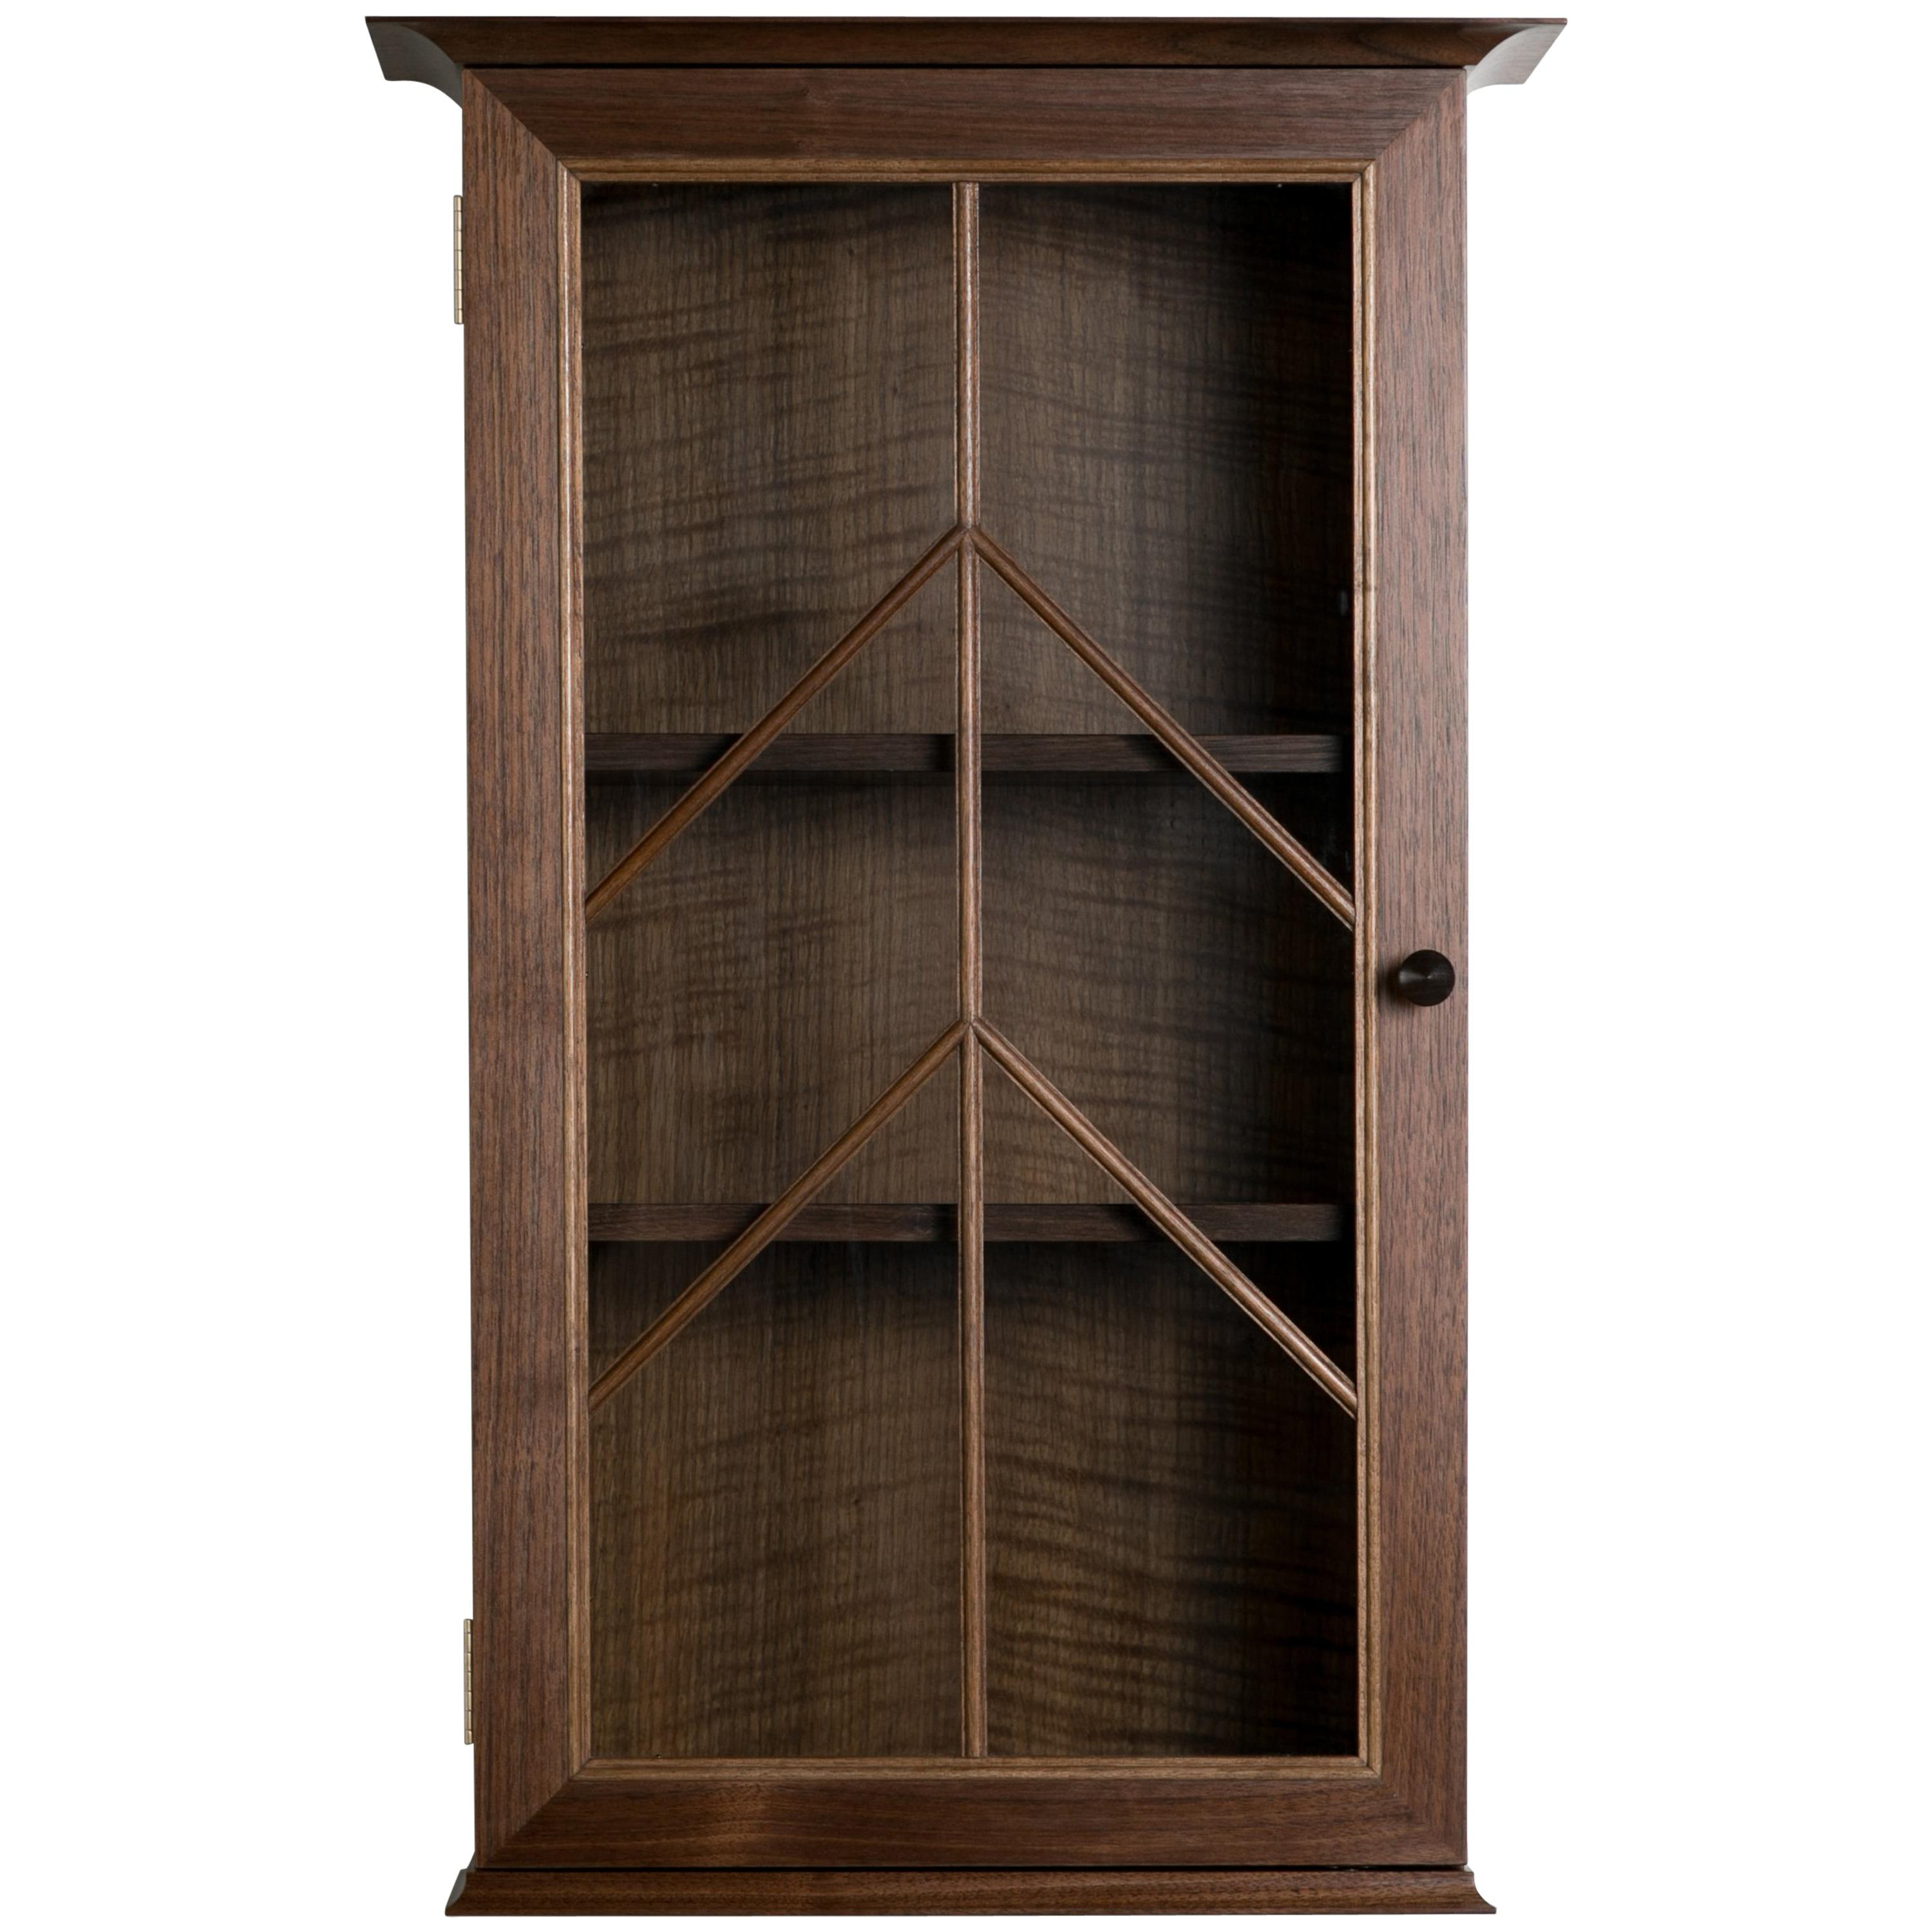 Contemporary North End Wall Cabinet In Walnut, Curly Oak With Barred Glass Door Pertaining To Northend Wall Mirrors (View 13 of 20)